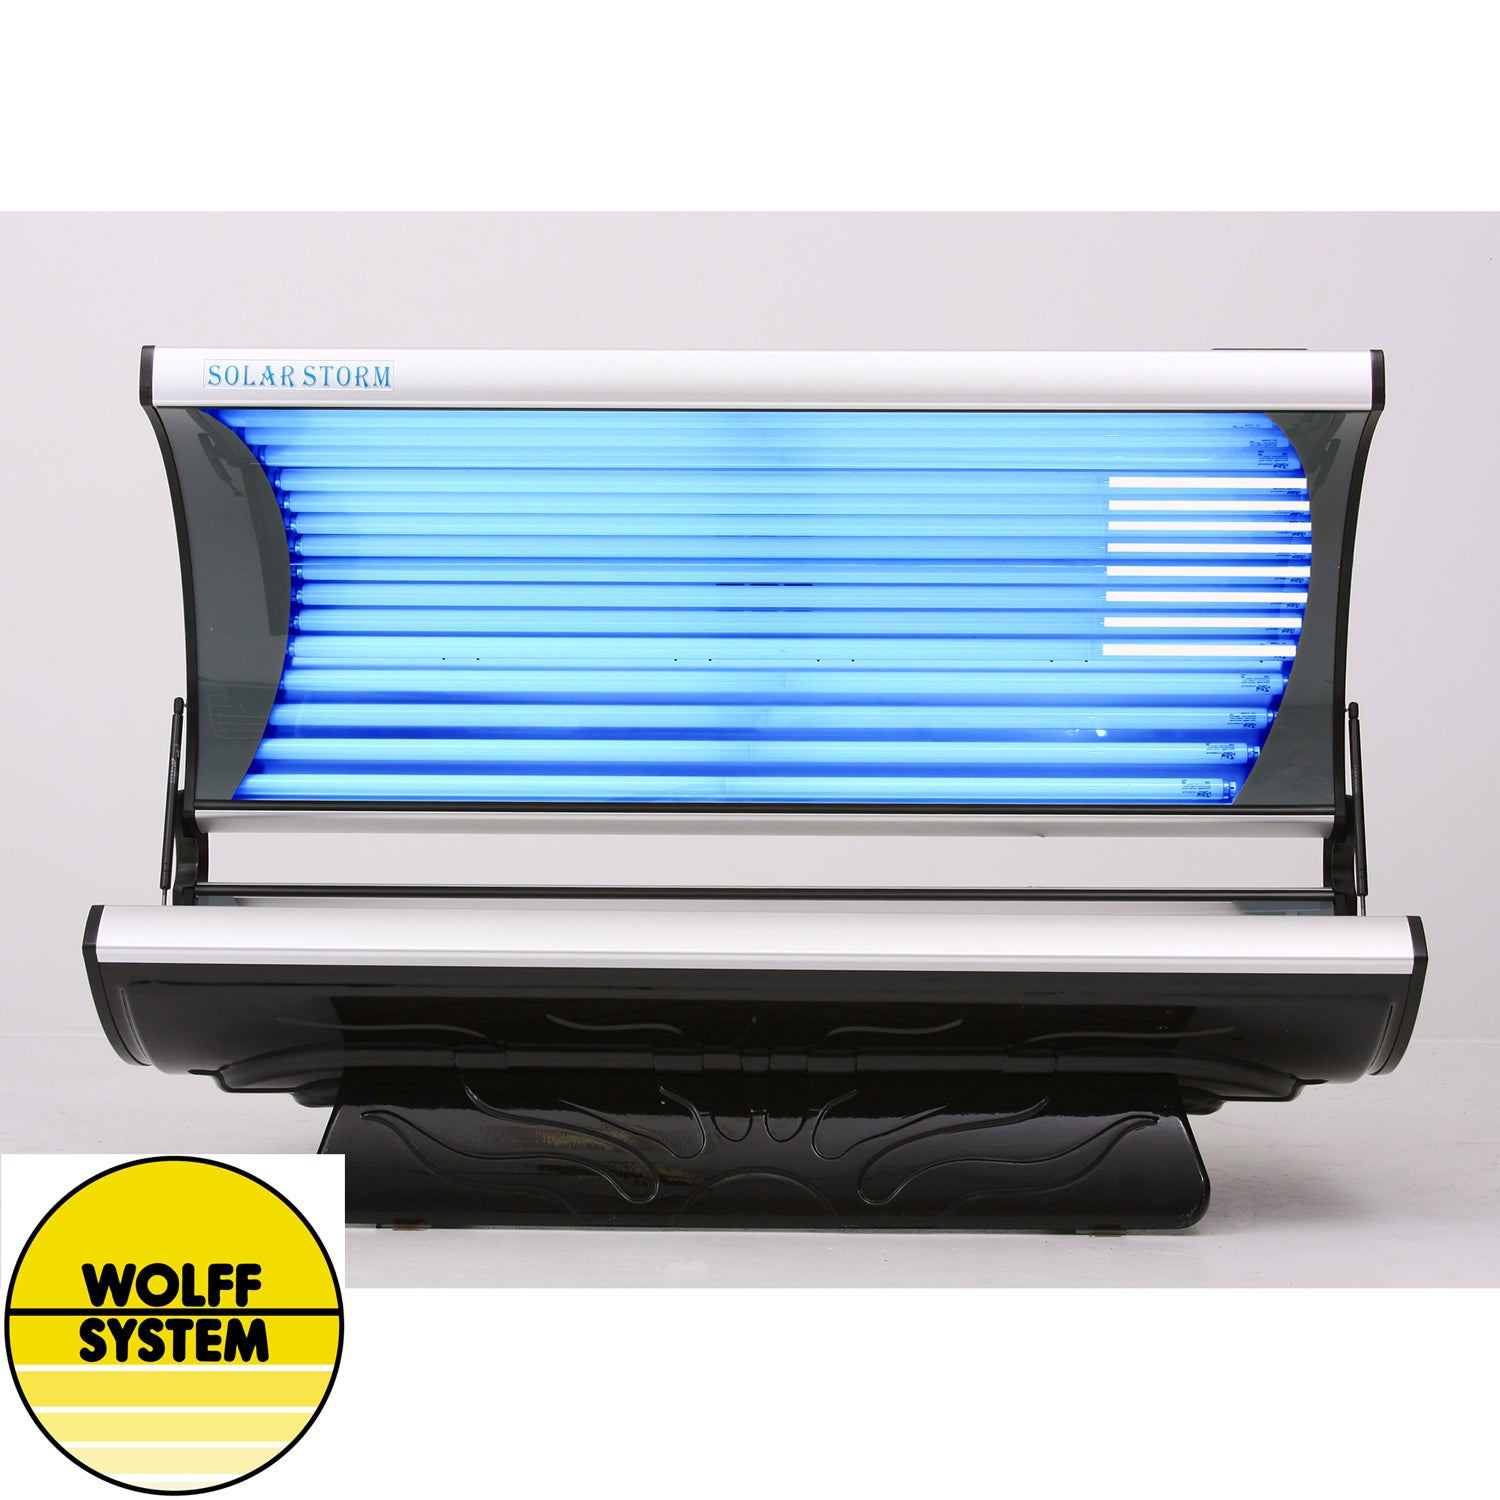 Solar Storm Wolff Systems Solar Storm 220V 24 Lamp Tanning Bed at Sears.com